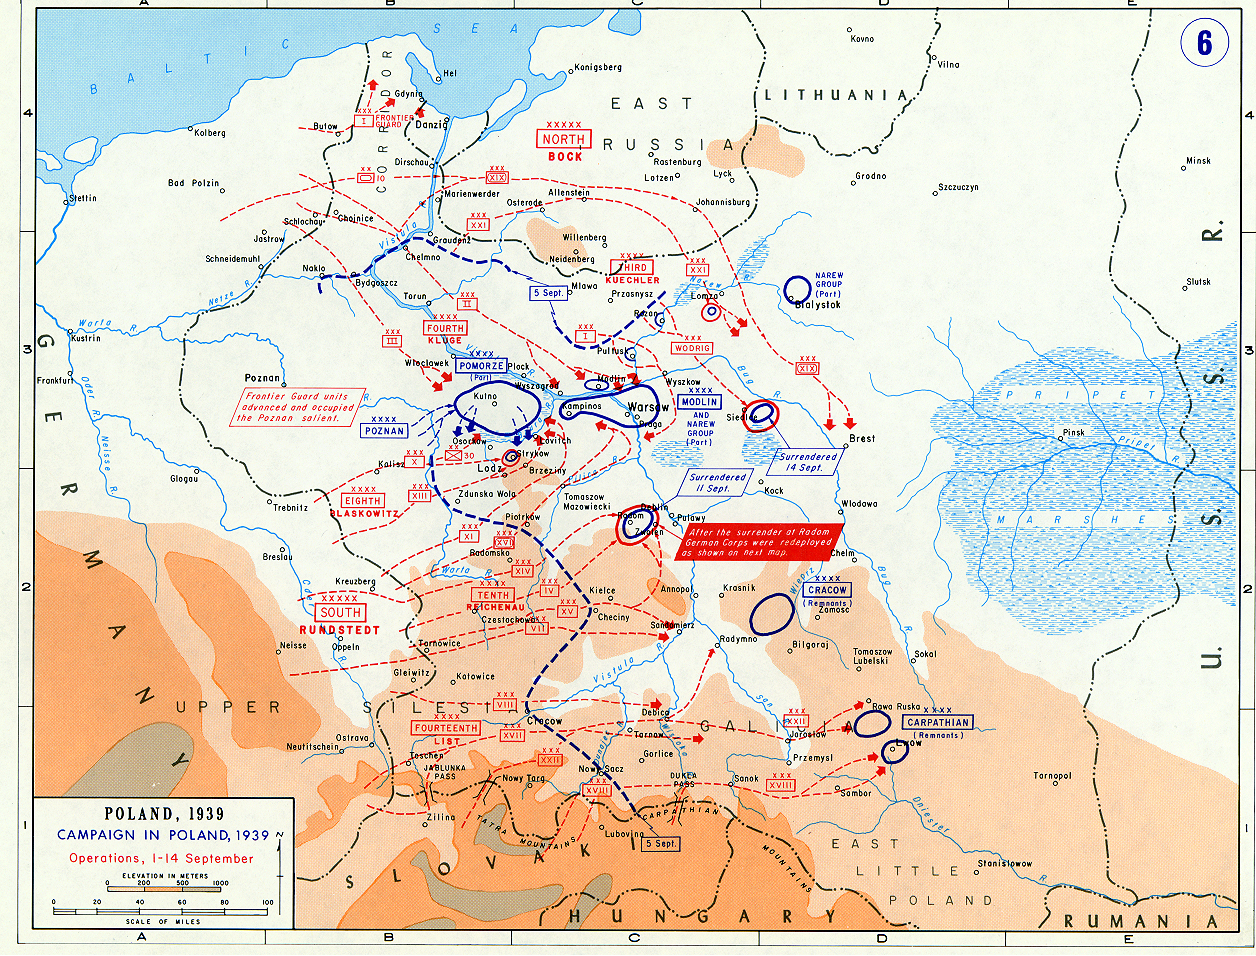 Invasion of Poland Maps - September 1939 « Historical ...